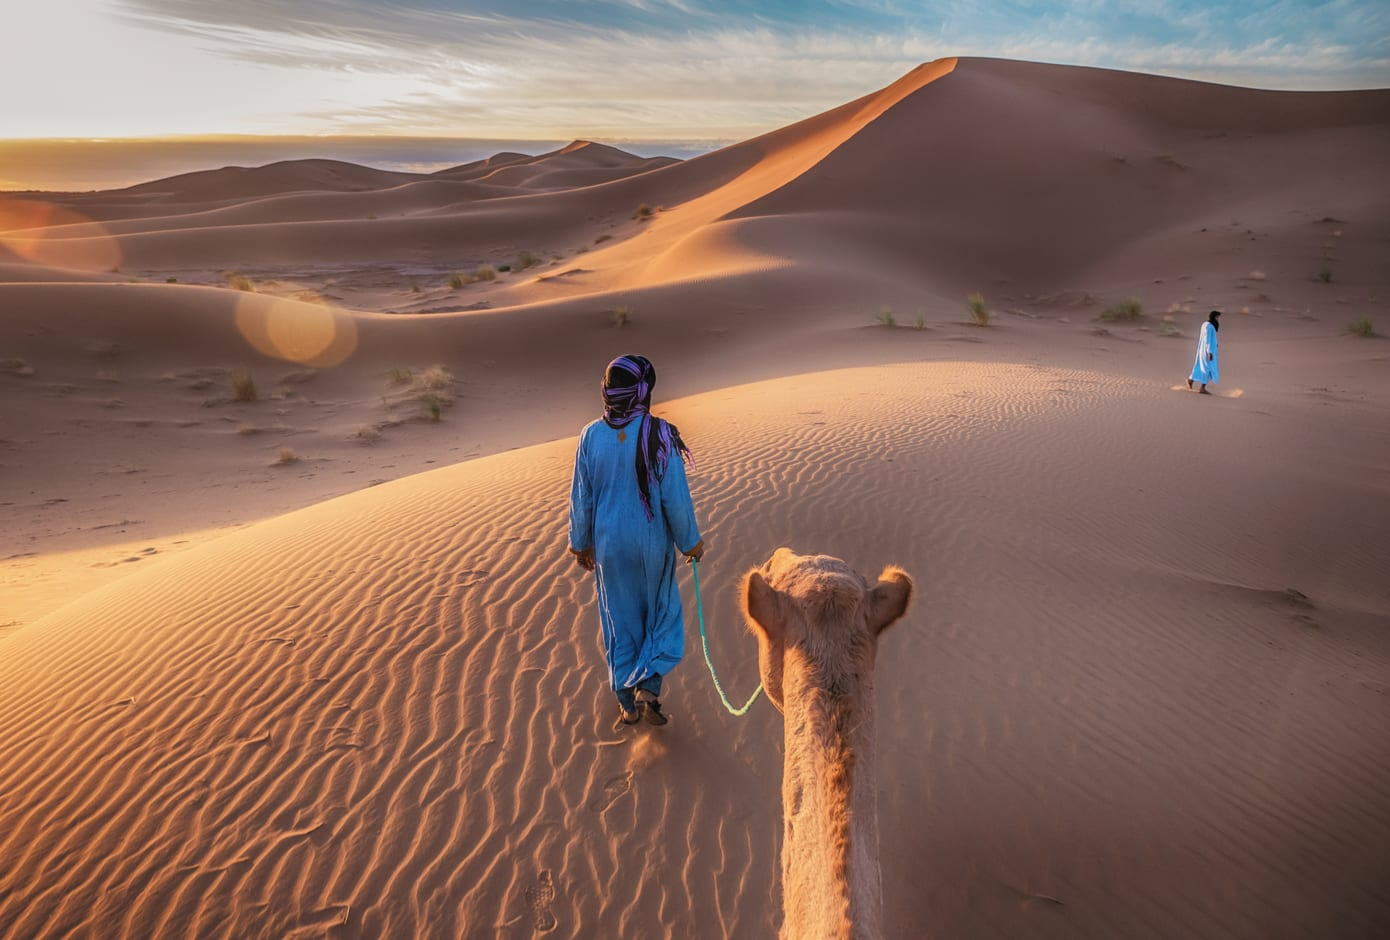 Nomad with camel in the Sahara Desert, Morocco.